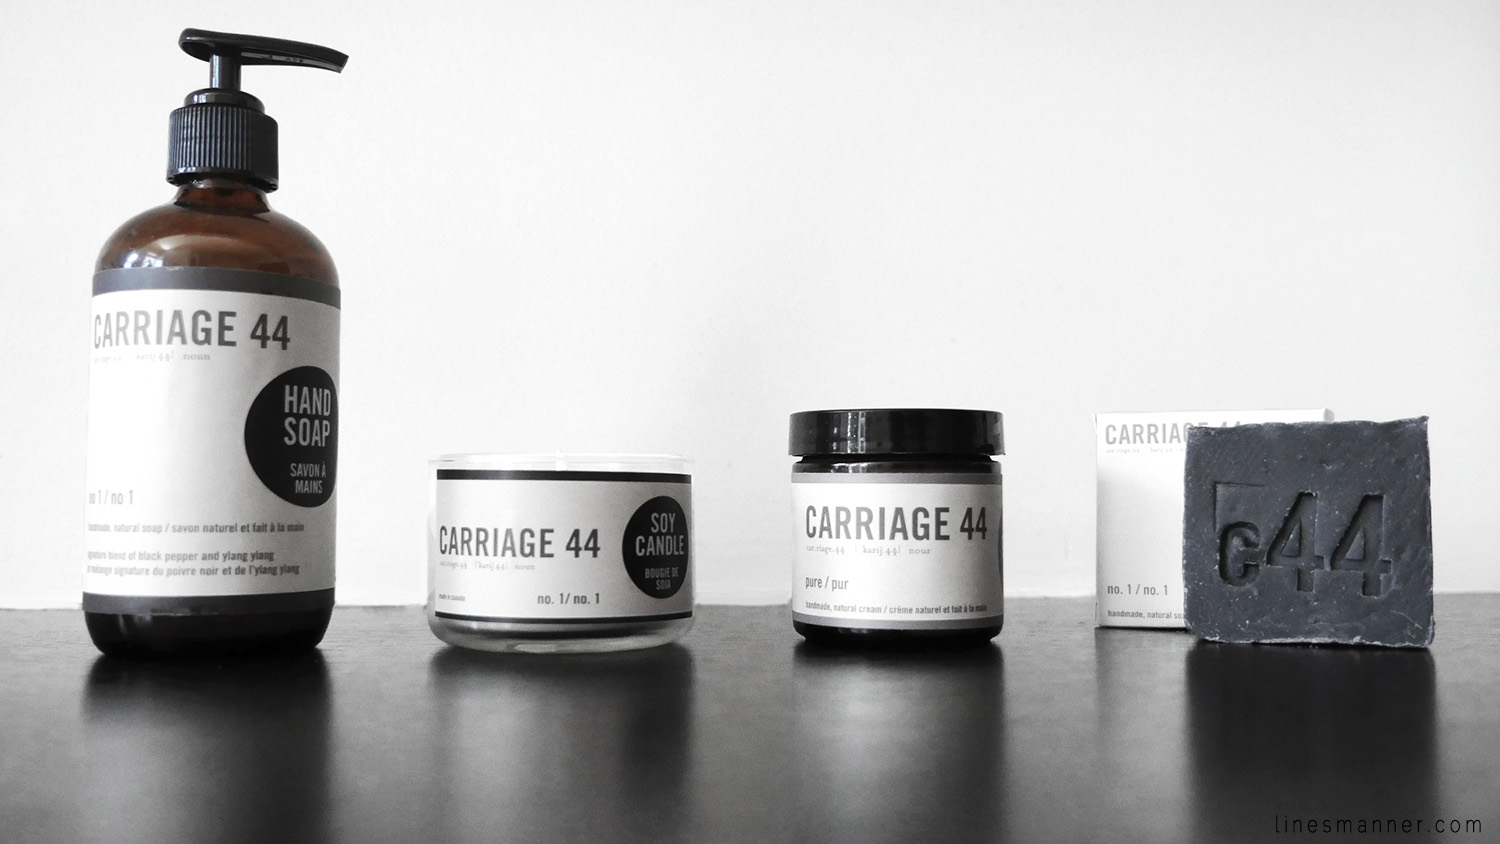 Lines-Manner-Carriage_44-Handcrafted-Design-Skin_care-Soap-Candles-Shea_ButterDesigners-Minimalist-Handmade-Environmentally_friendly-Natural-Products-Scents-Simplicity-Quality-1